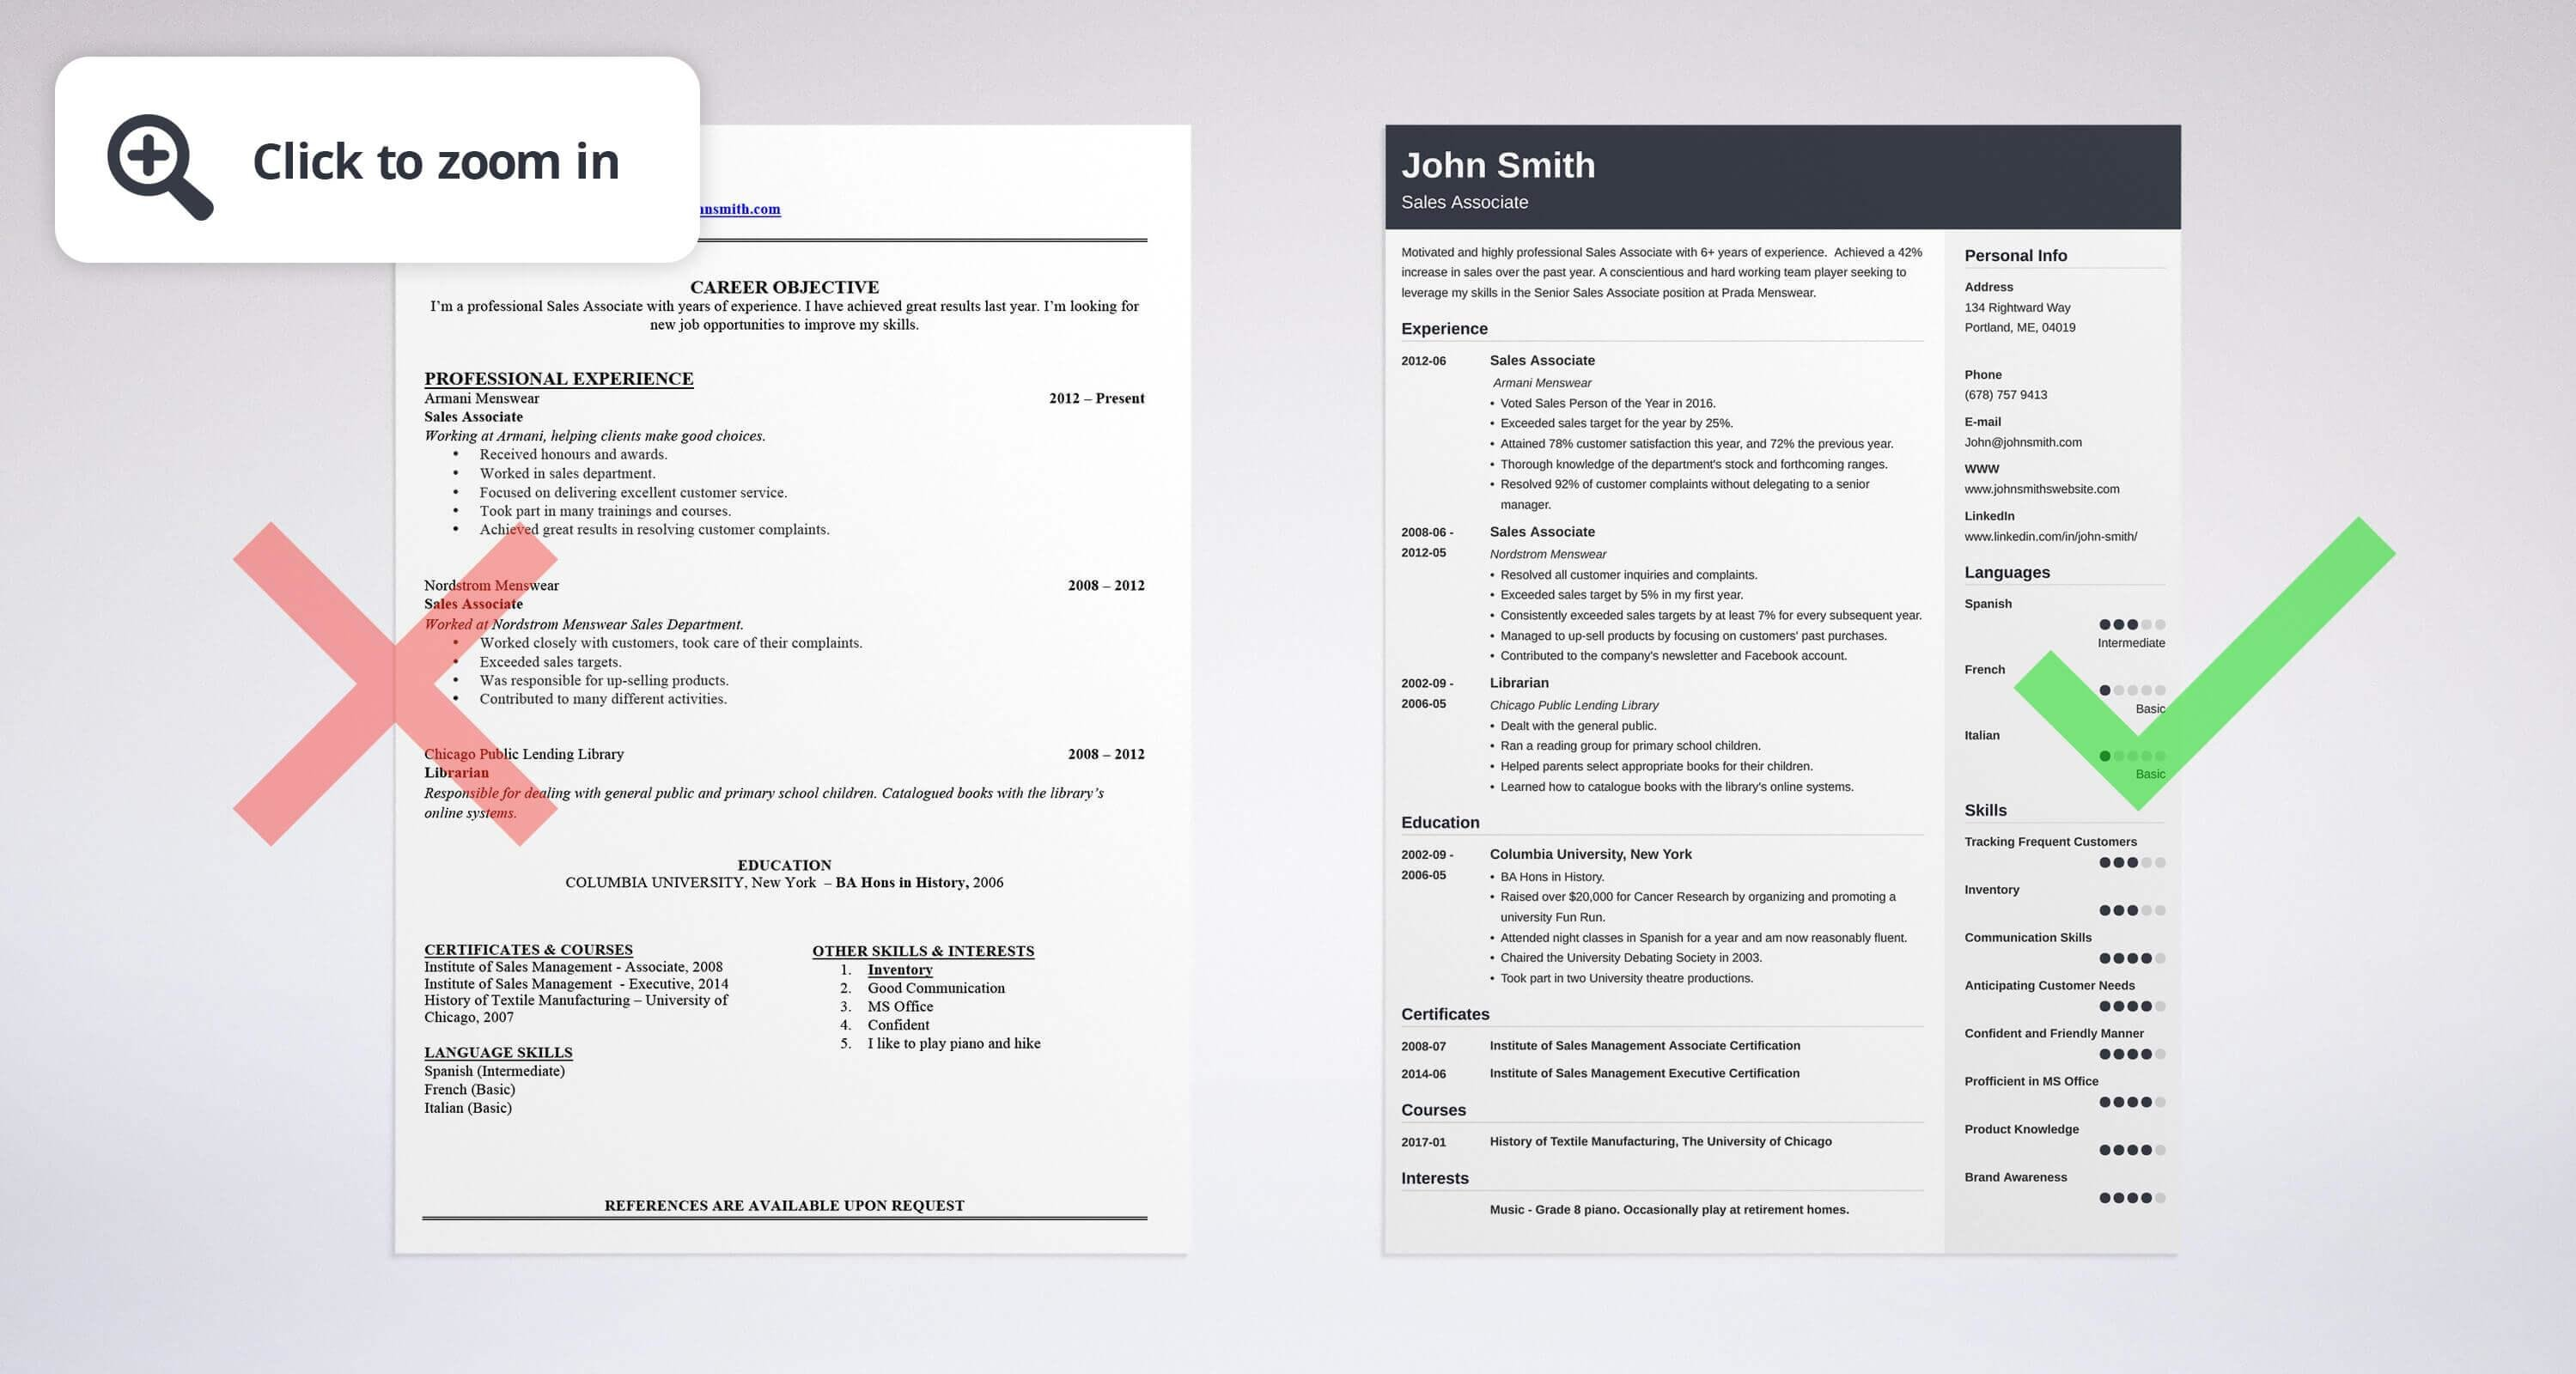 Beautiful Uptowork  Skills And Abilities On Resume